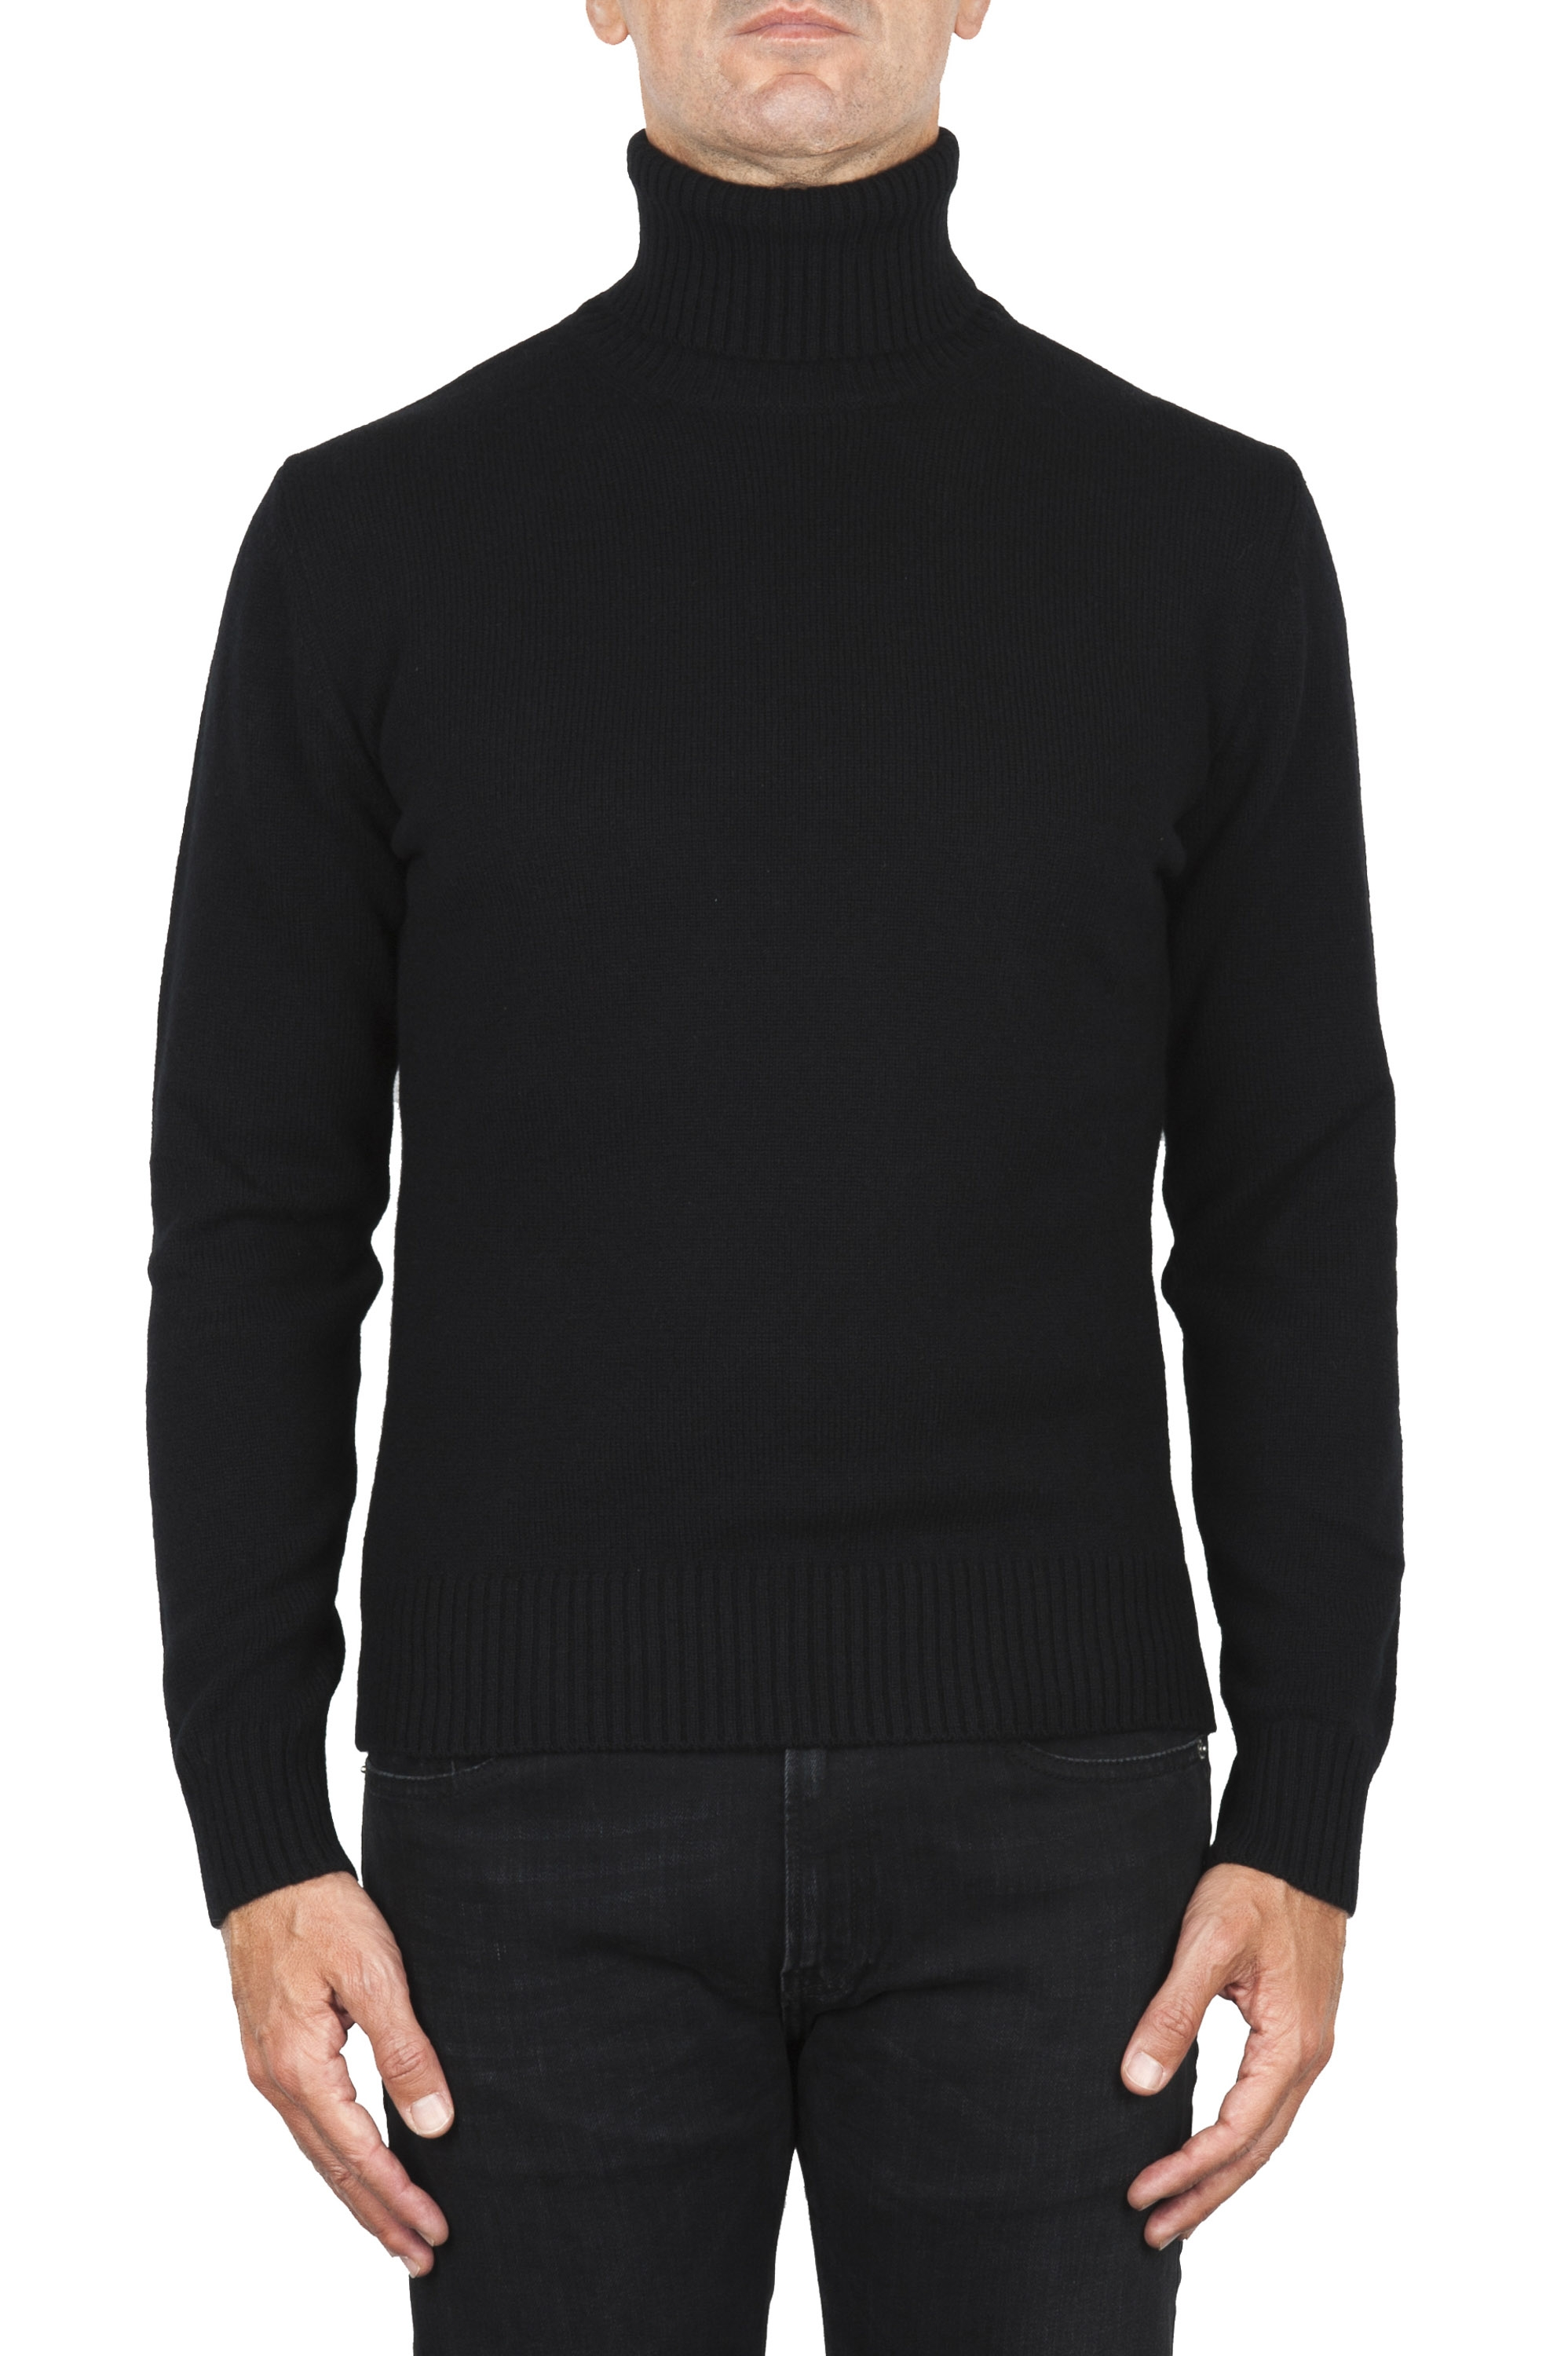 SBU 01857_19AW Black roll-neck sweater in wool cashmere blend 01